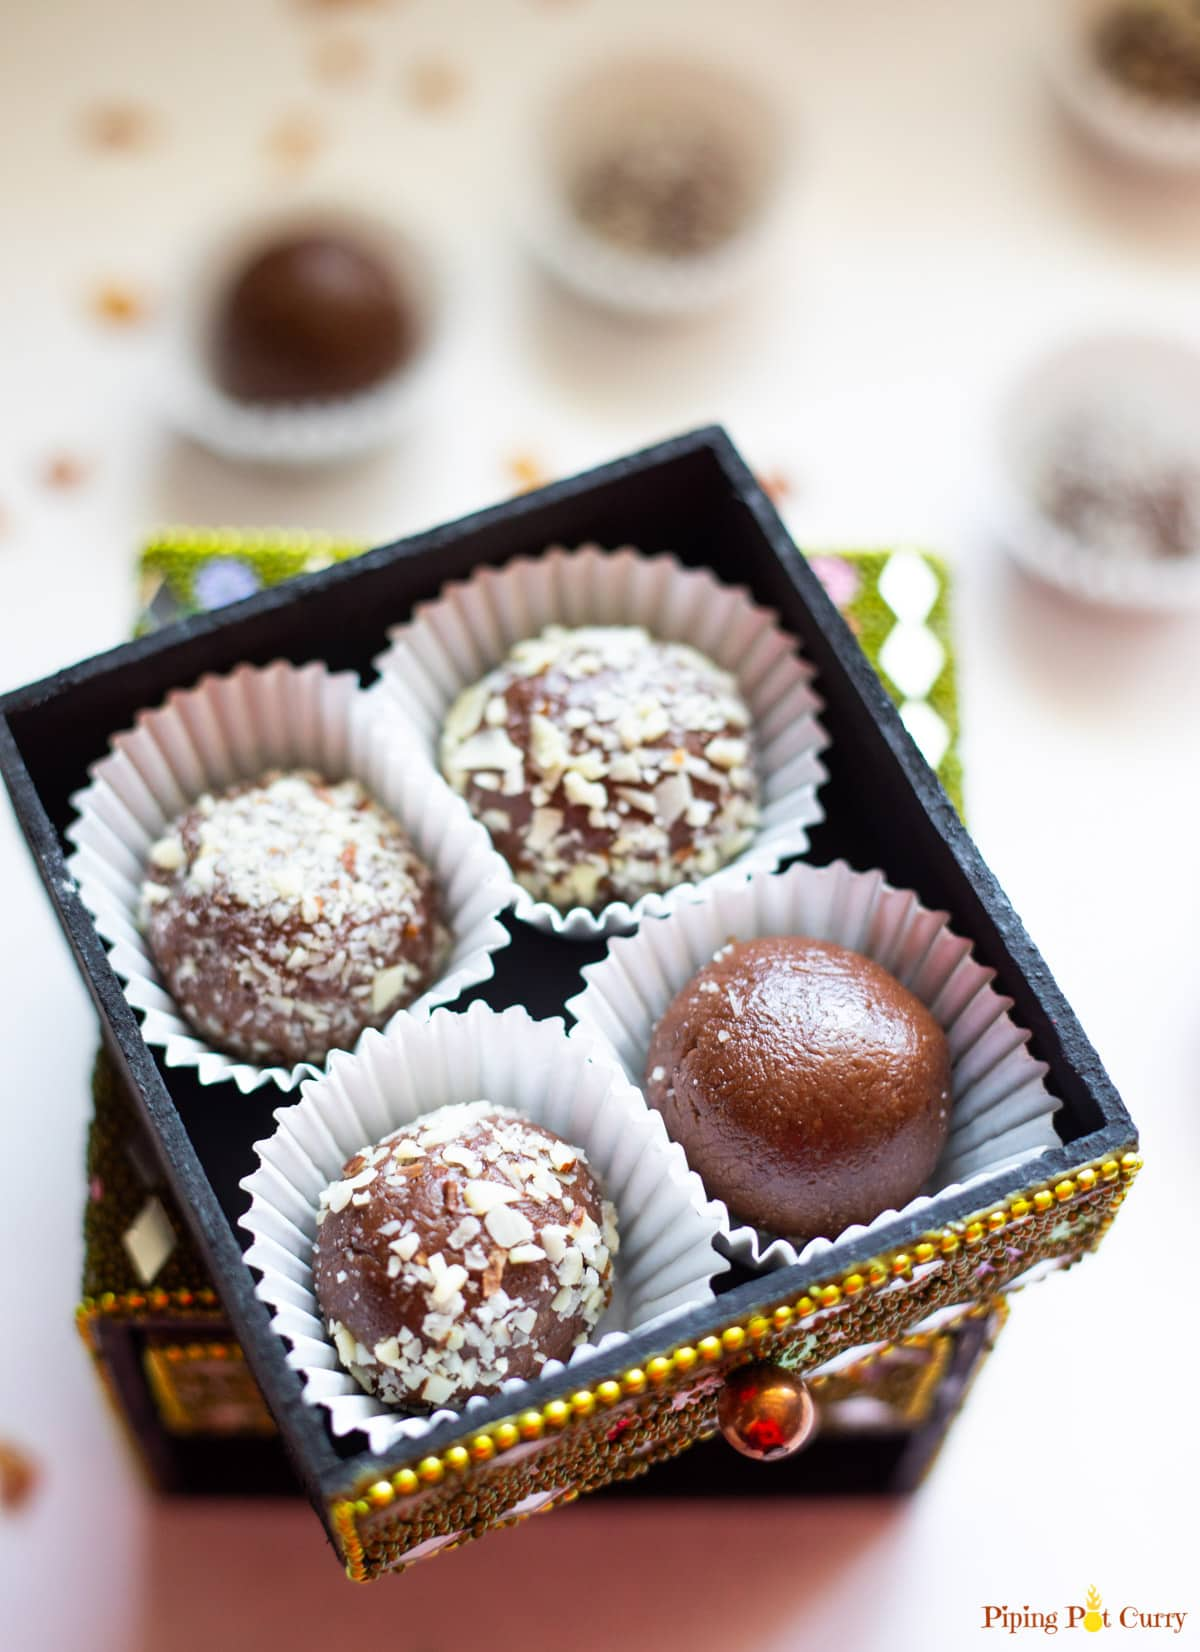 Four Chocolate Ladoo balls In a small decorated box